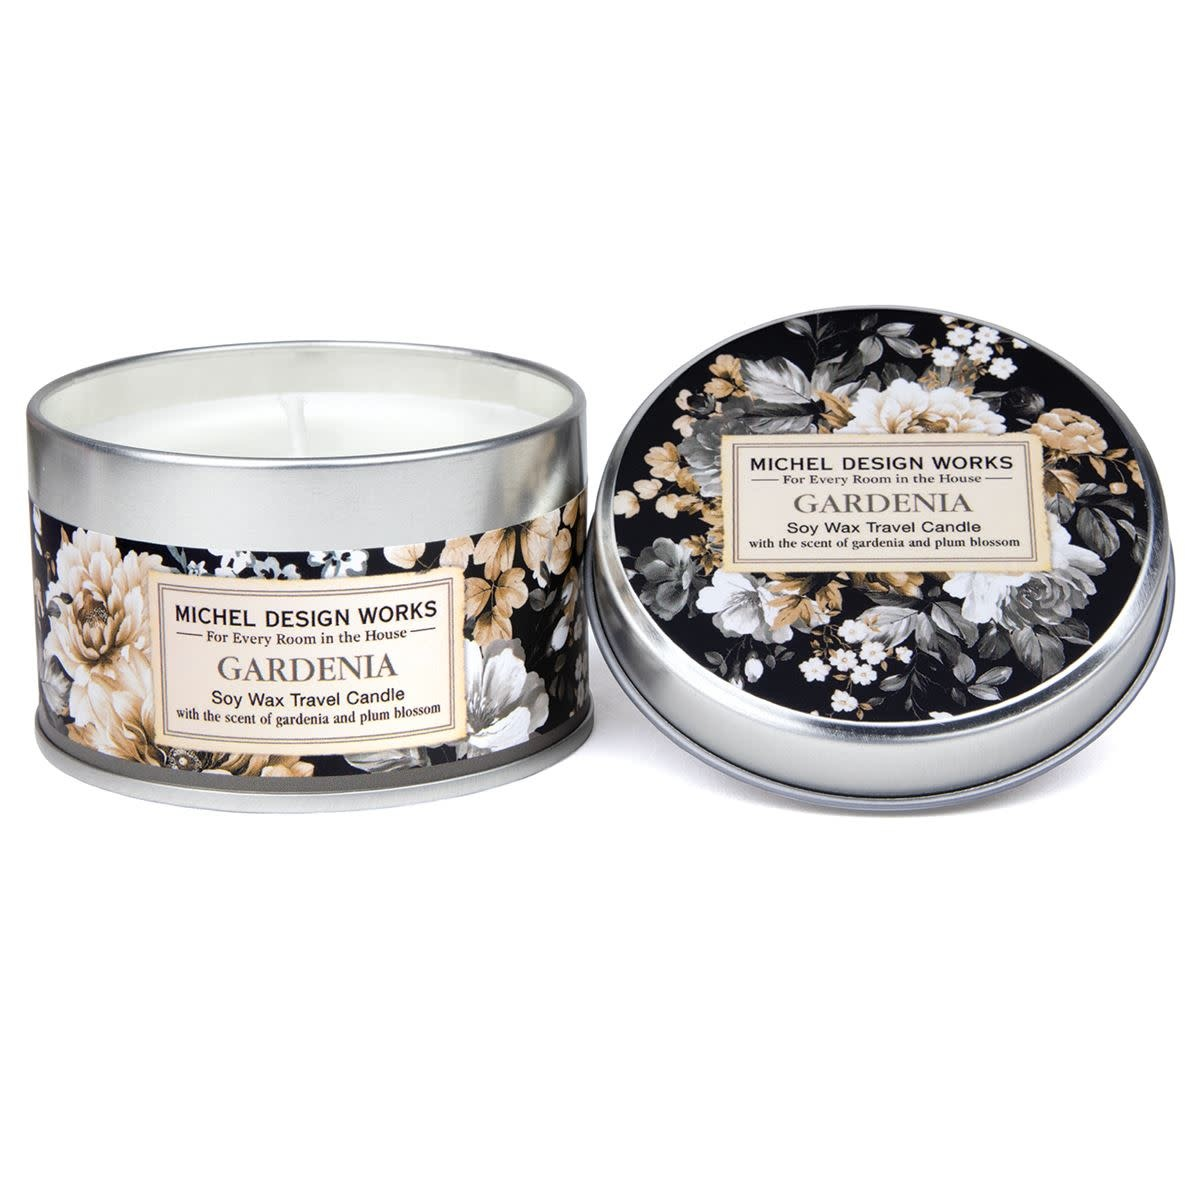 MICHEL DESIGN WORKS GARDENIA TRAVEL CANDLE